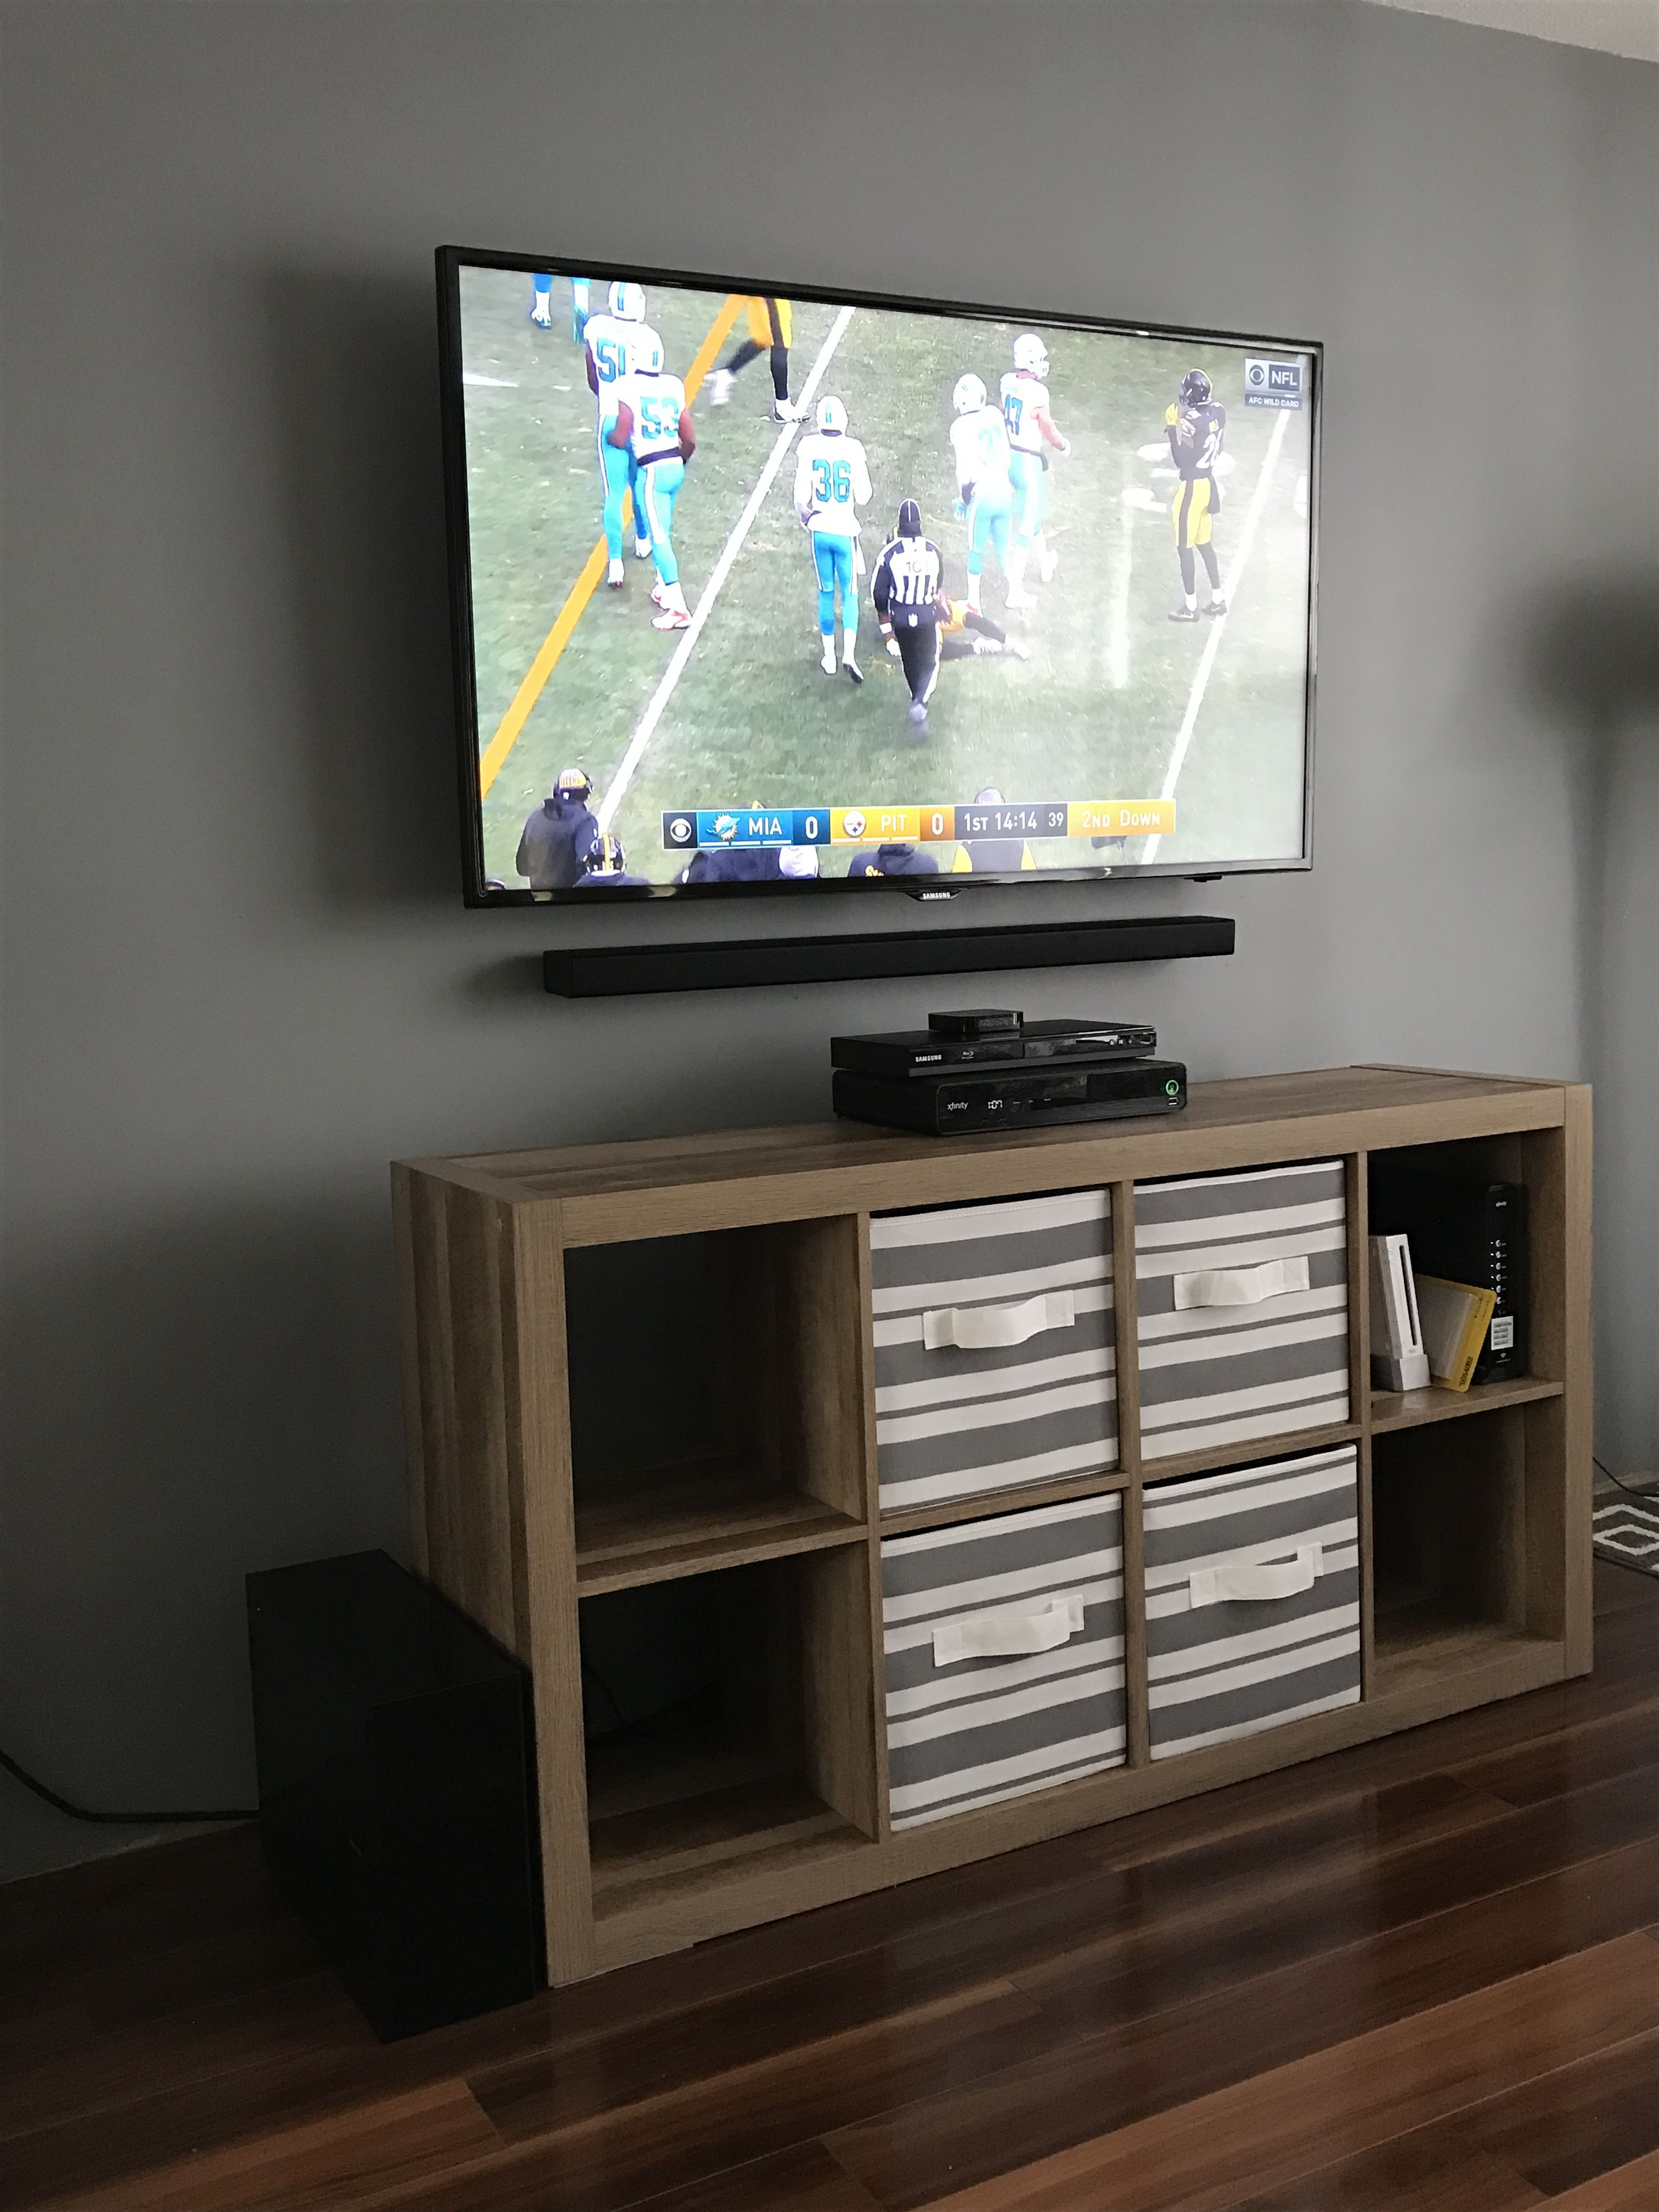 Mounted My 55 Samsung Led Tv And Samsung 3 1 Sound Bar Hiding The